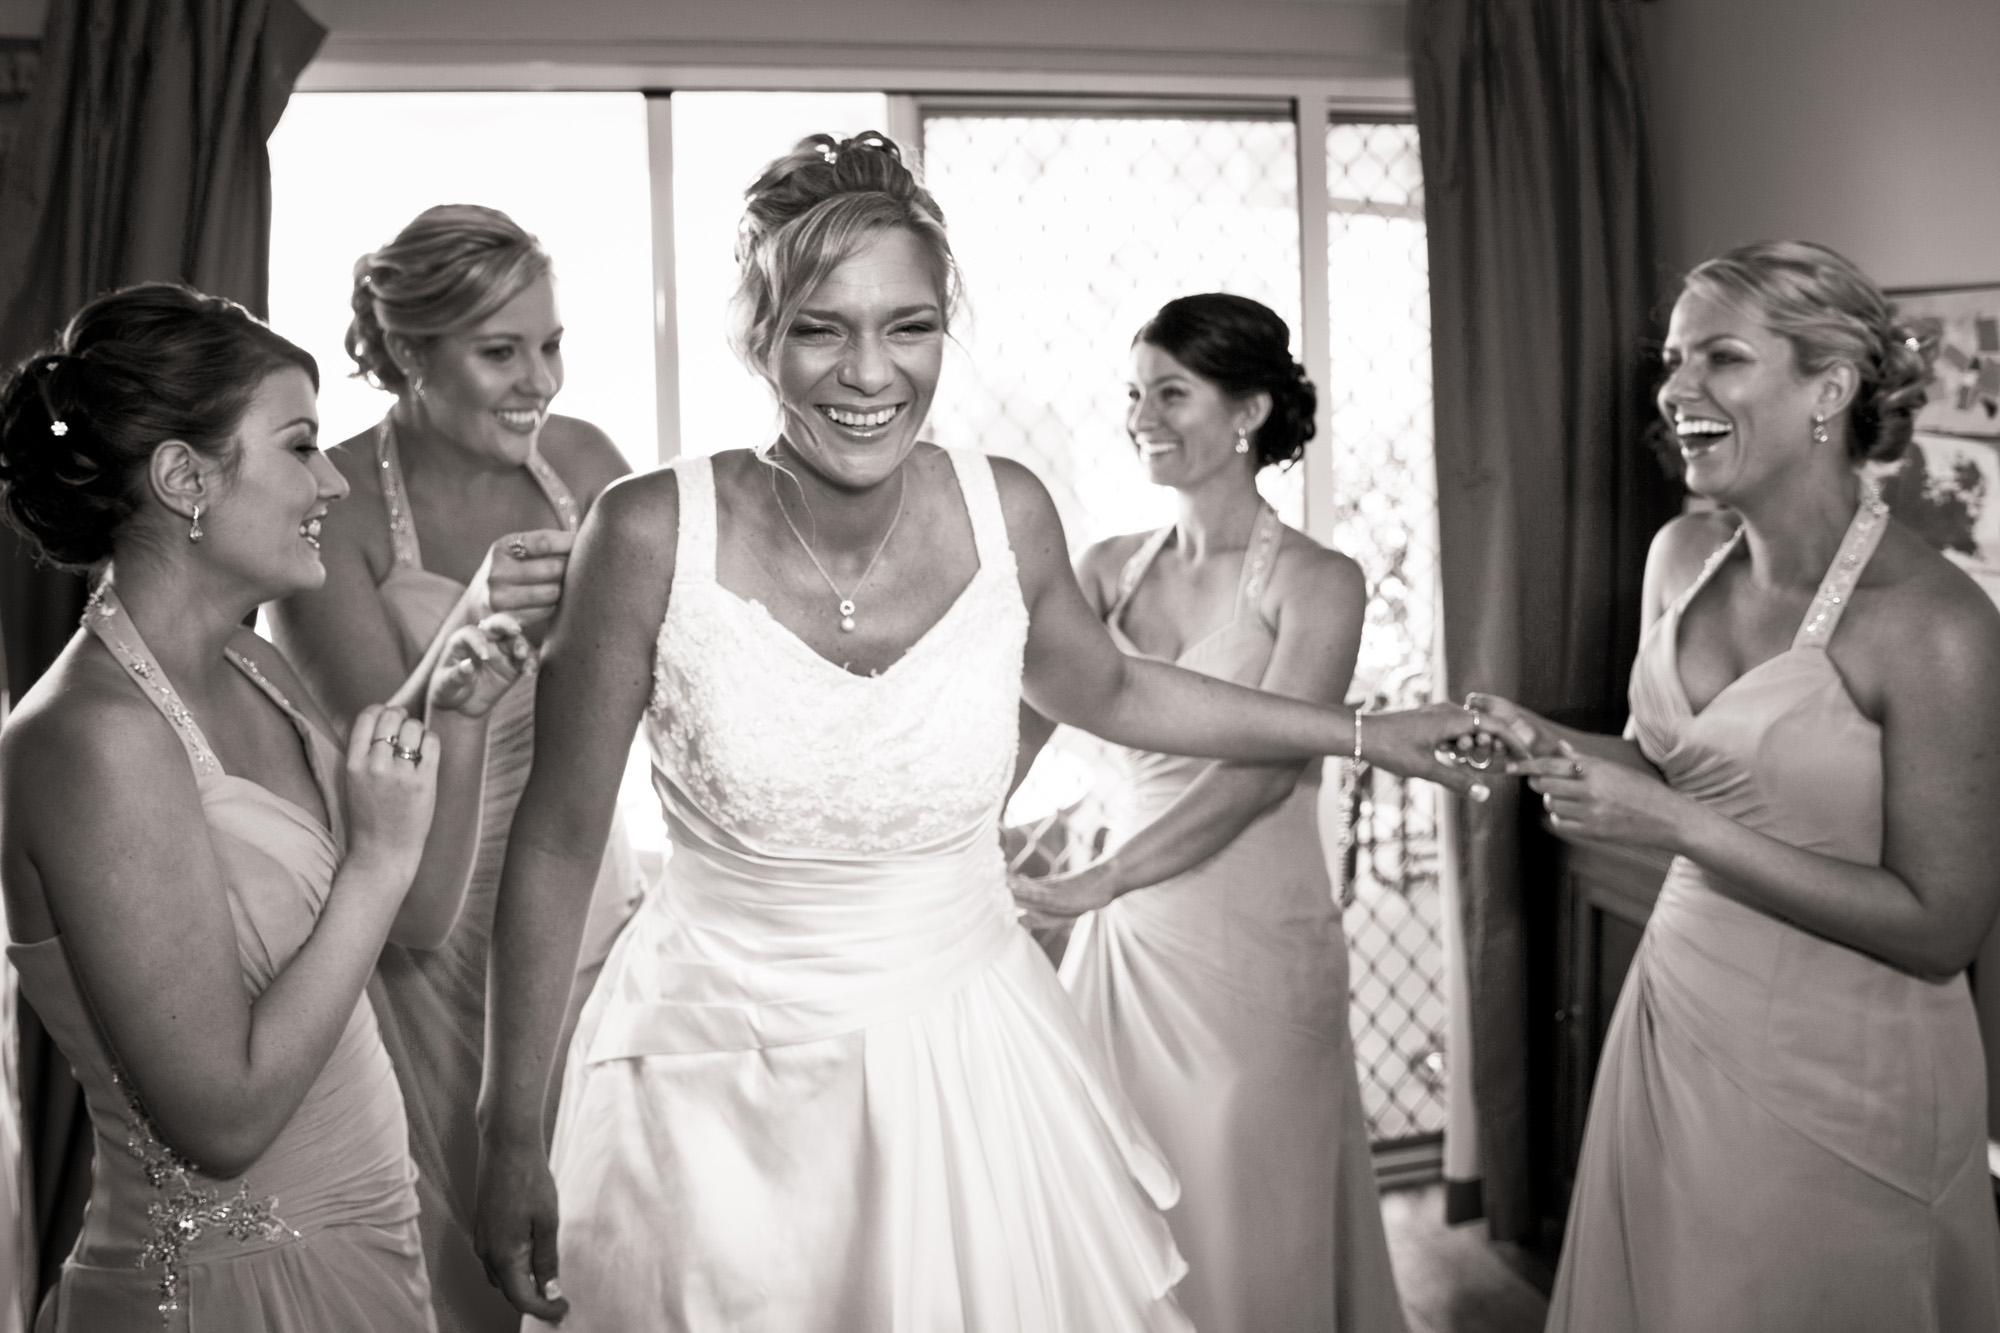 wedding-photographer-brisbane-17.jpg